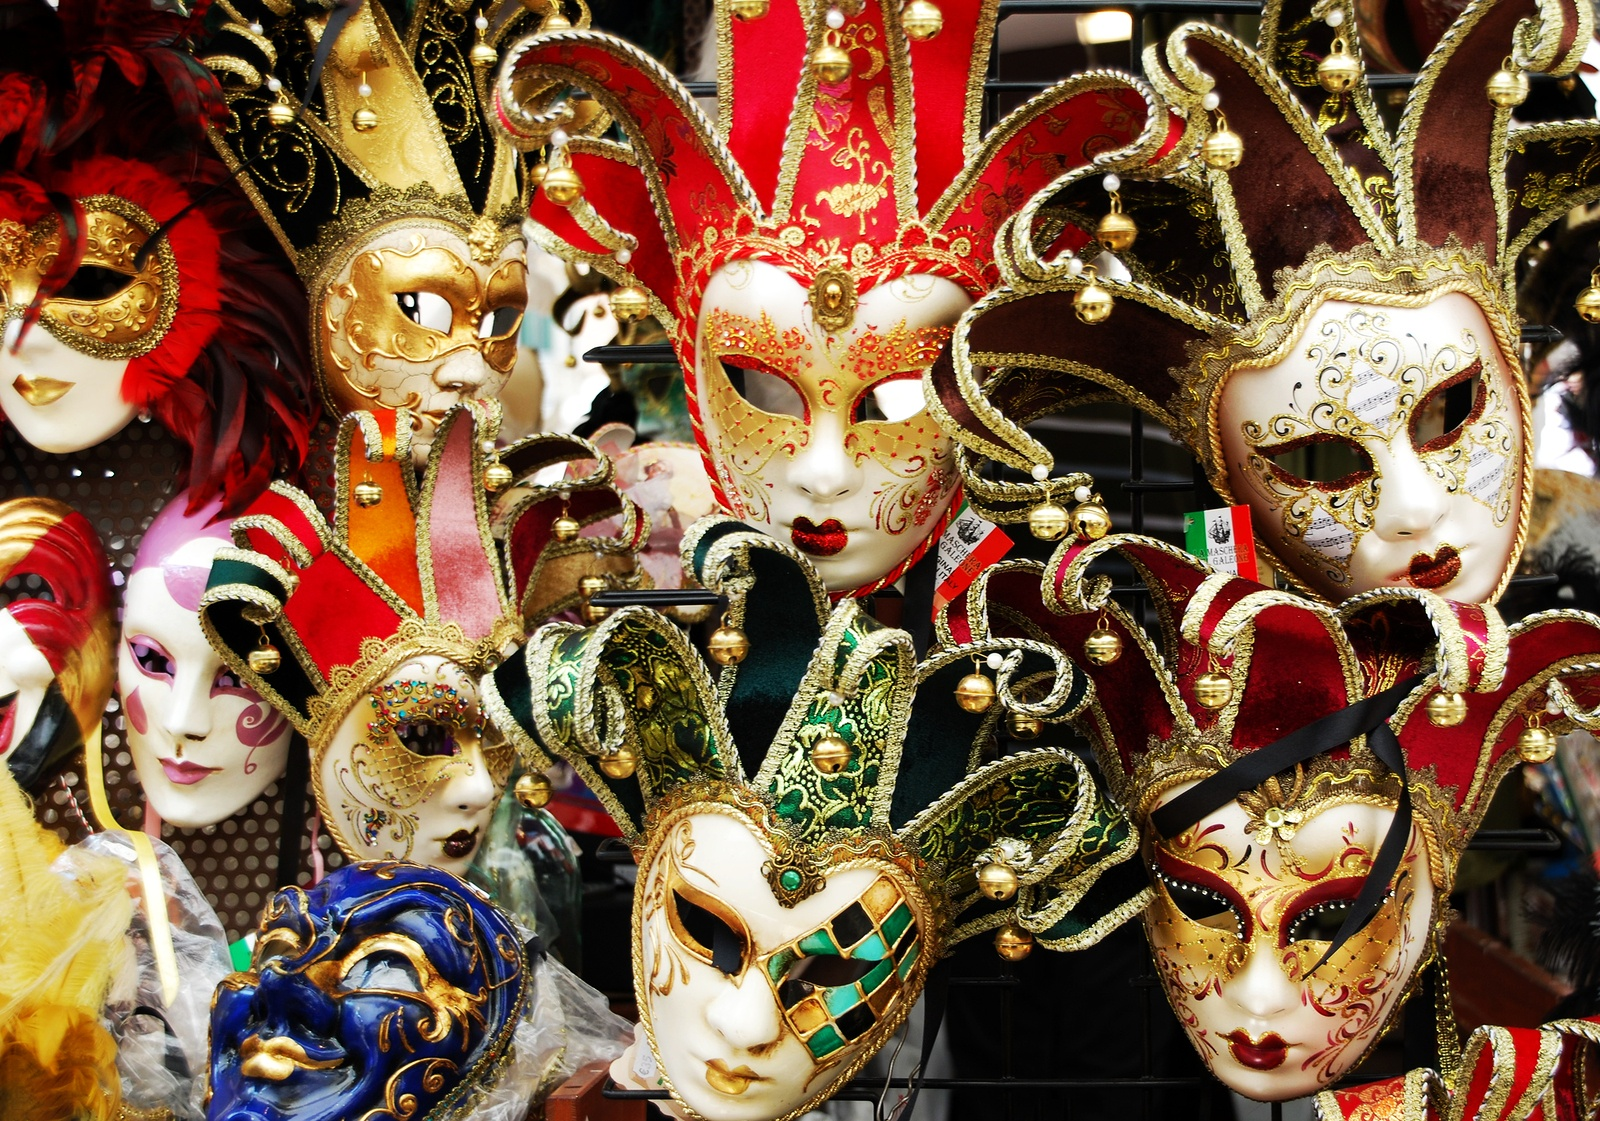 bigstock-A-Lot-Of-Carnival-Masks-For-Th-263399530